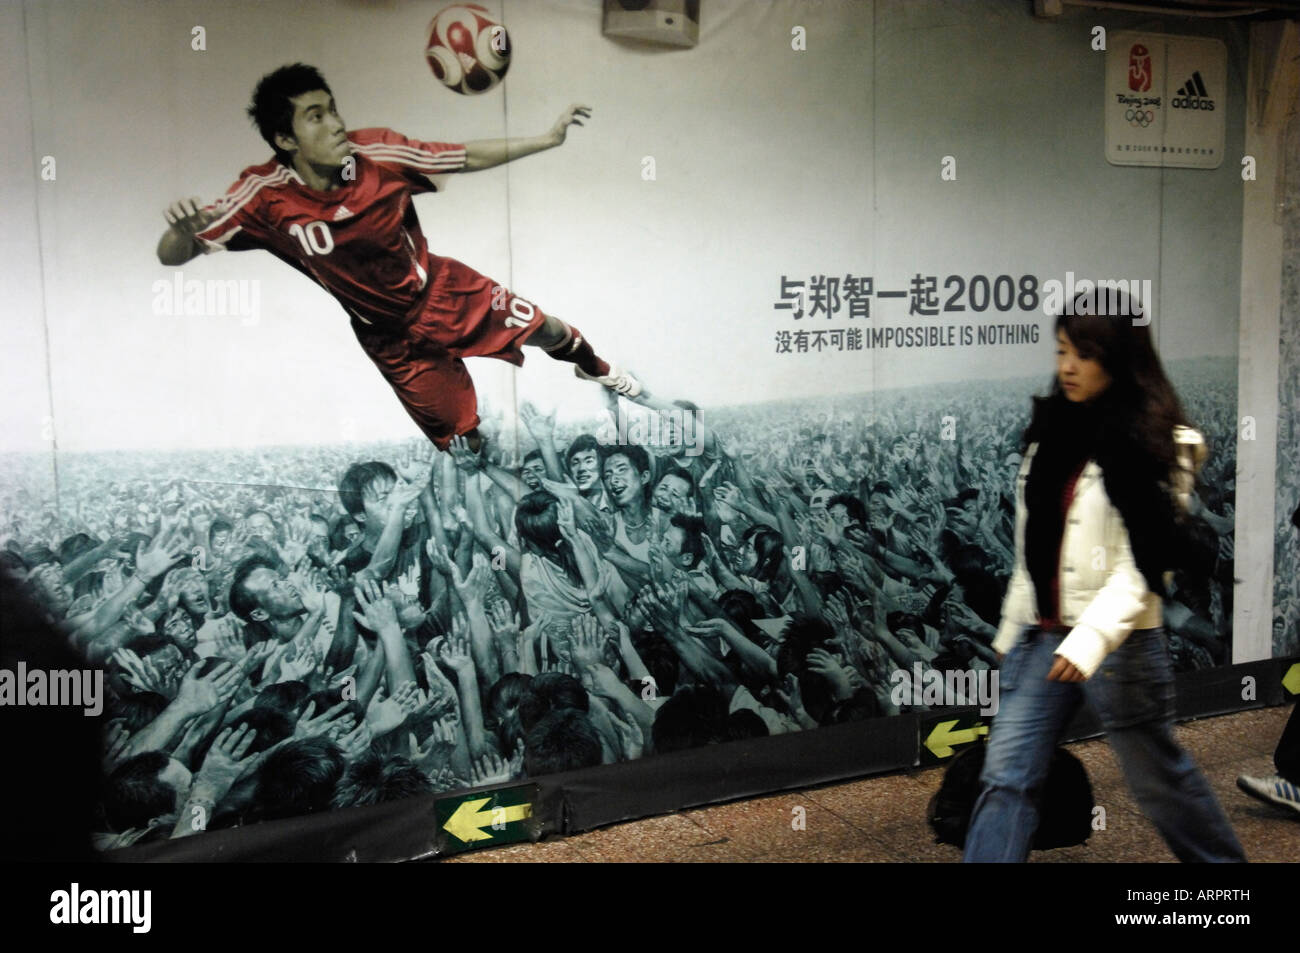 Adidas Beijing Olympics Advertisement High Resolution Stock Photography And Images Alamy